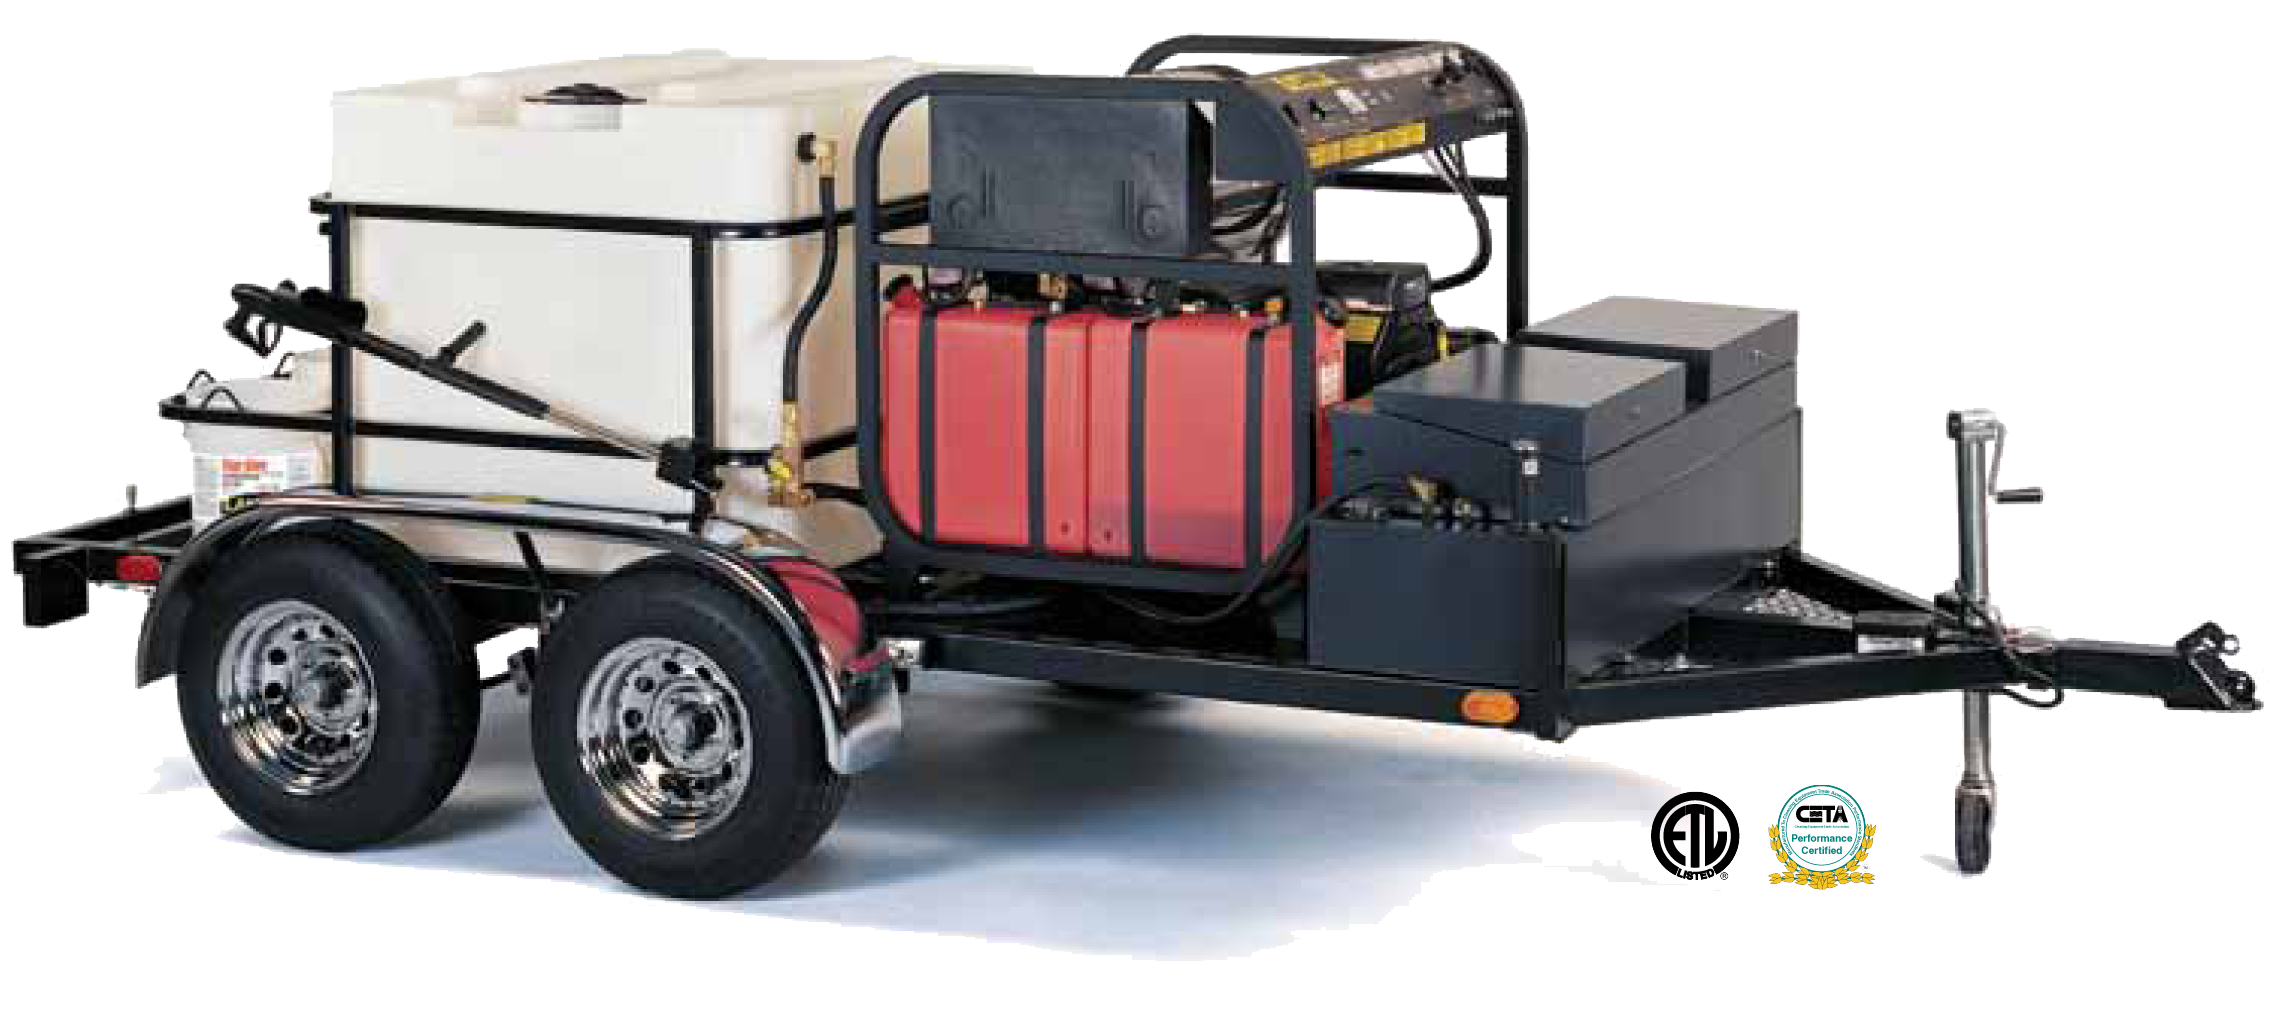 Landa TR-6000 Double-Axle Trailer-Mounted Hot Water Pressure Washer Trailer System